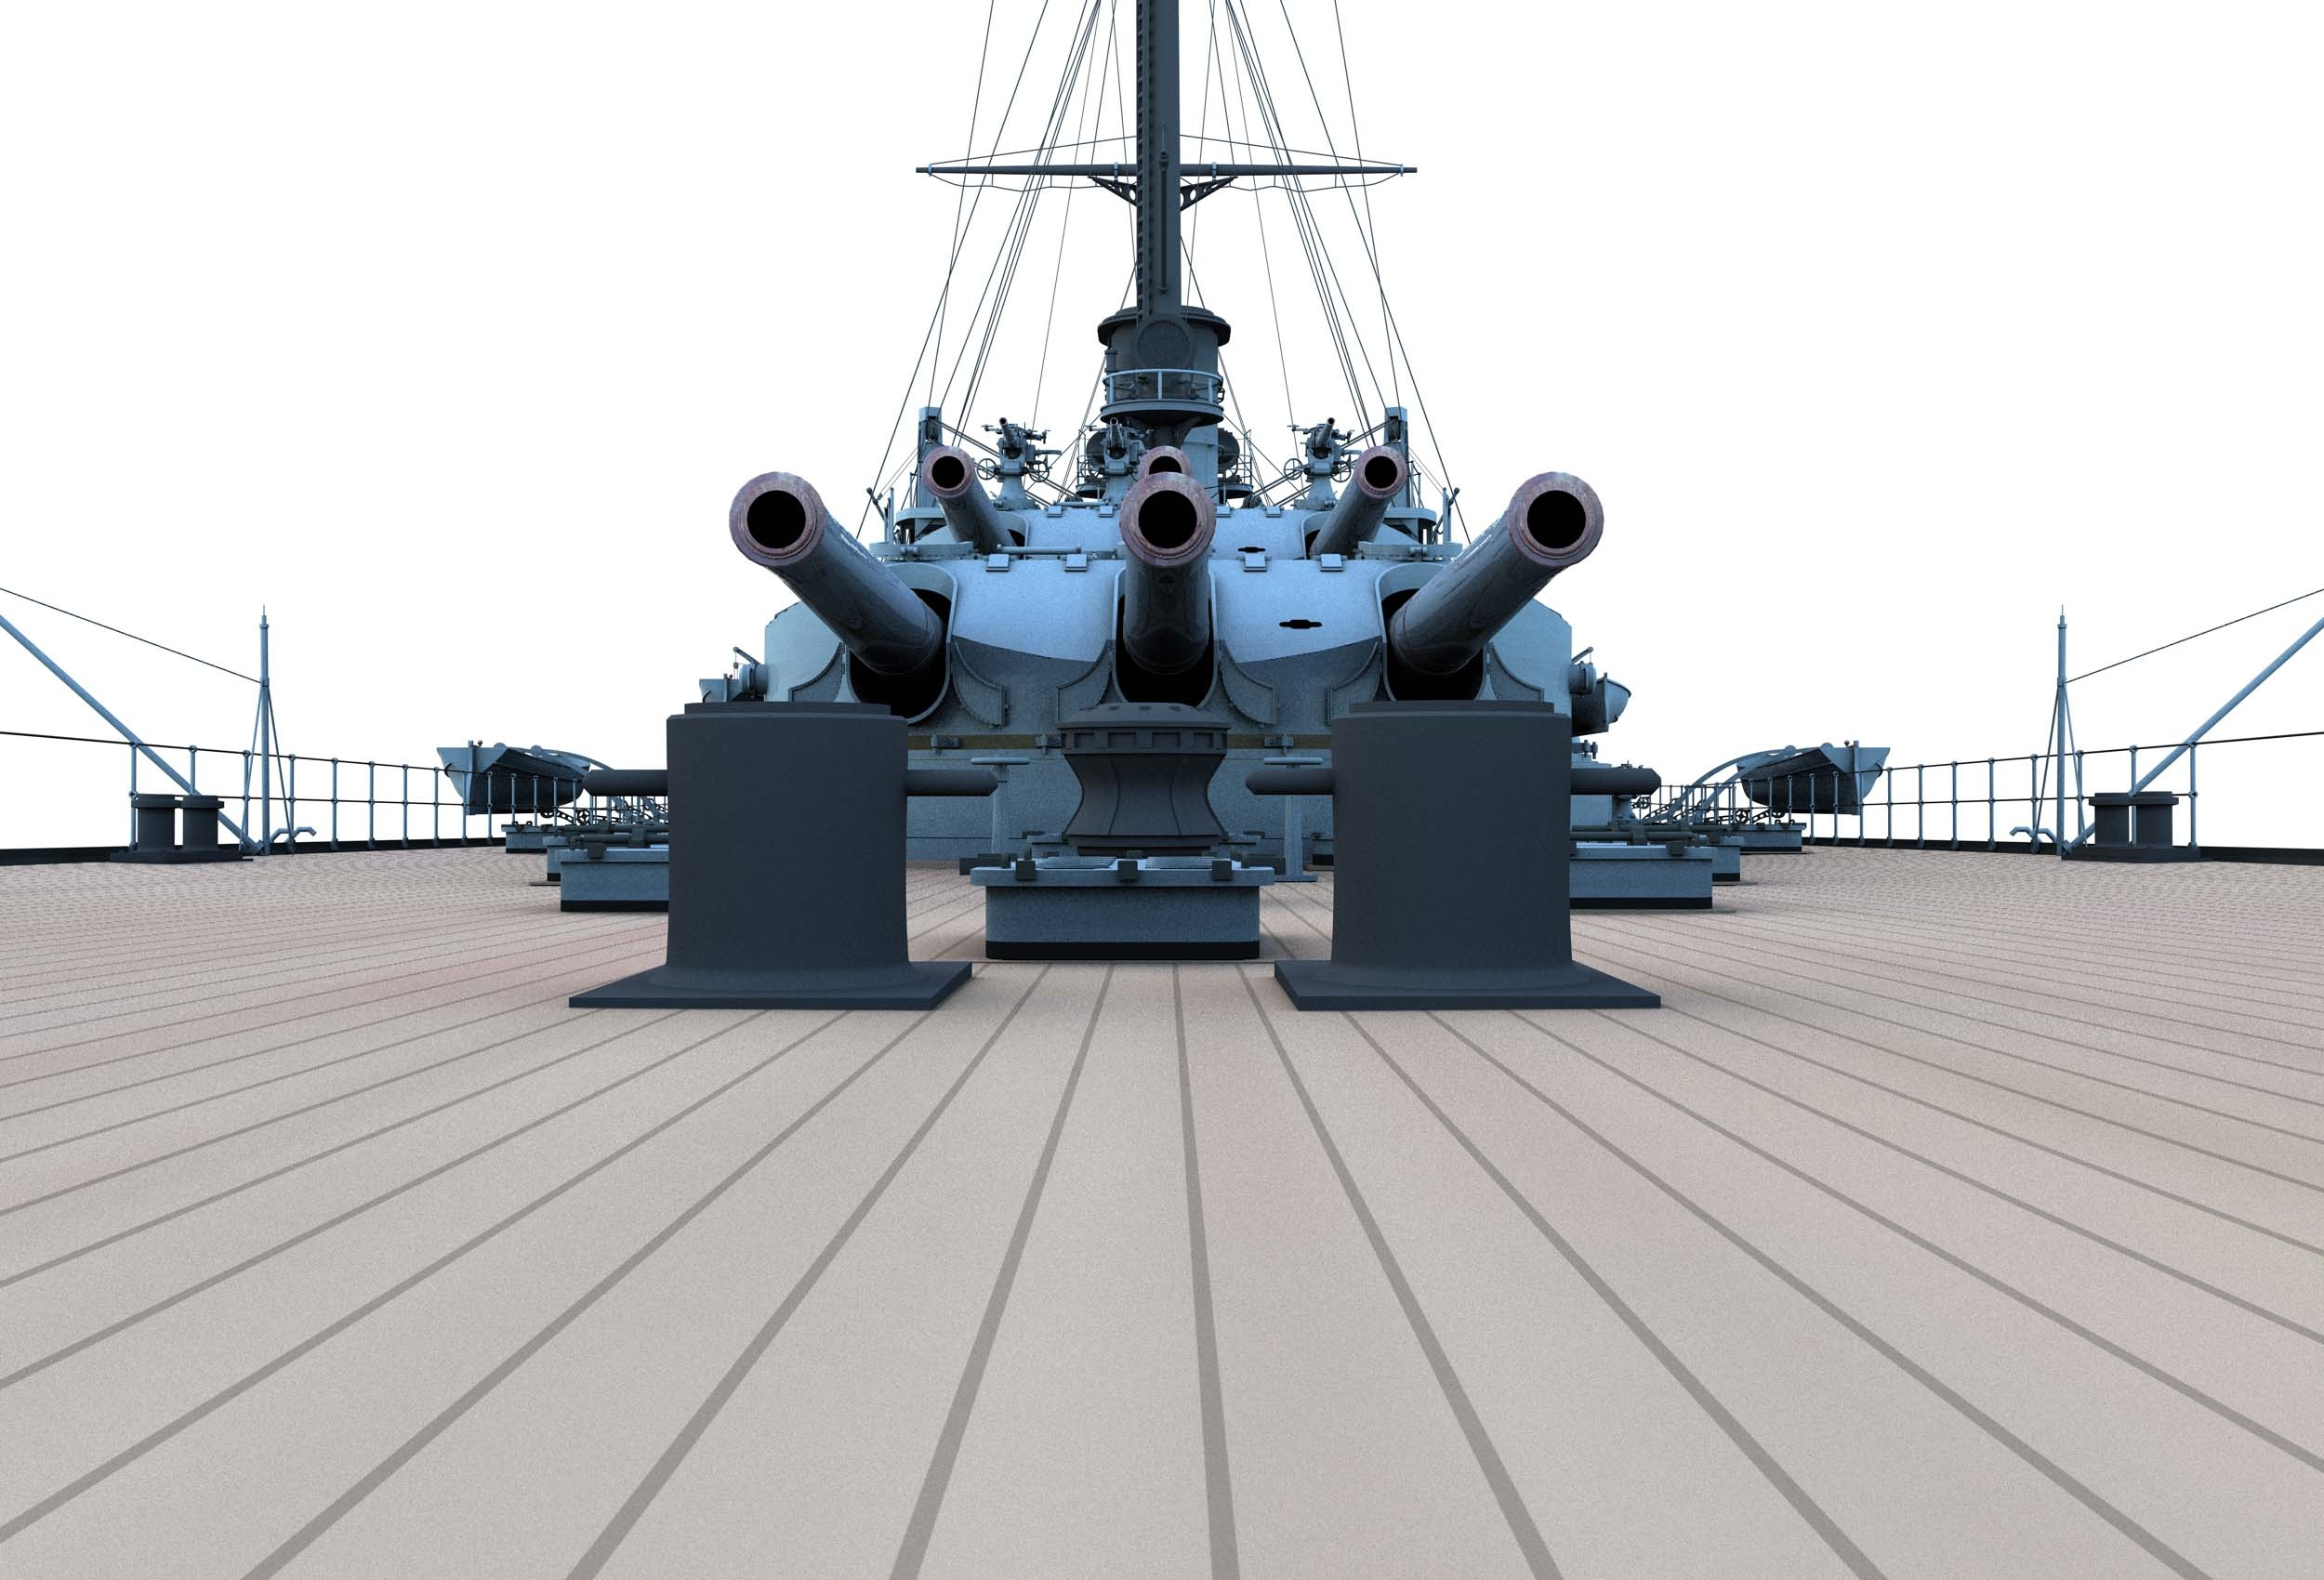 https://0901.nccdn.net/4_2/000/000/046/6ea/CK30-Parial-Ship-Stern-Deck-Level-Forward-Turrets-III-and-IV-2500x1700.jpg